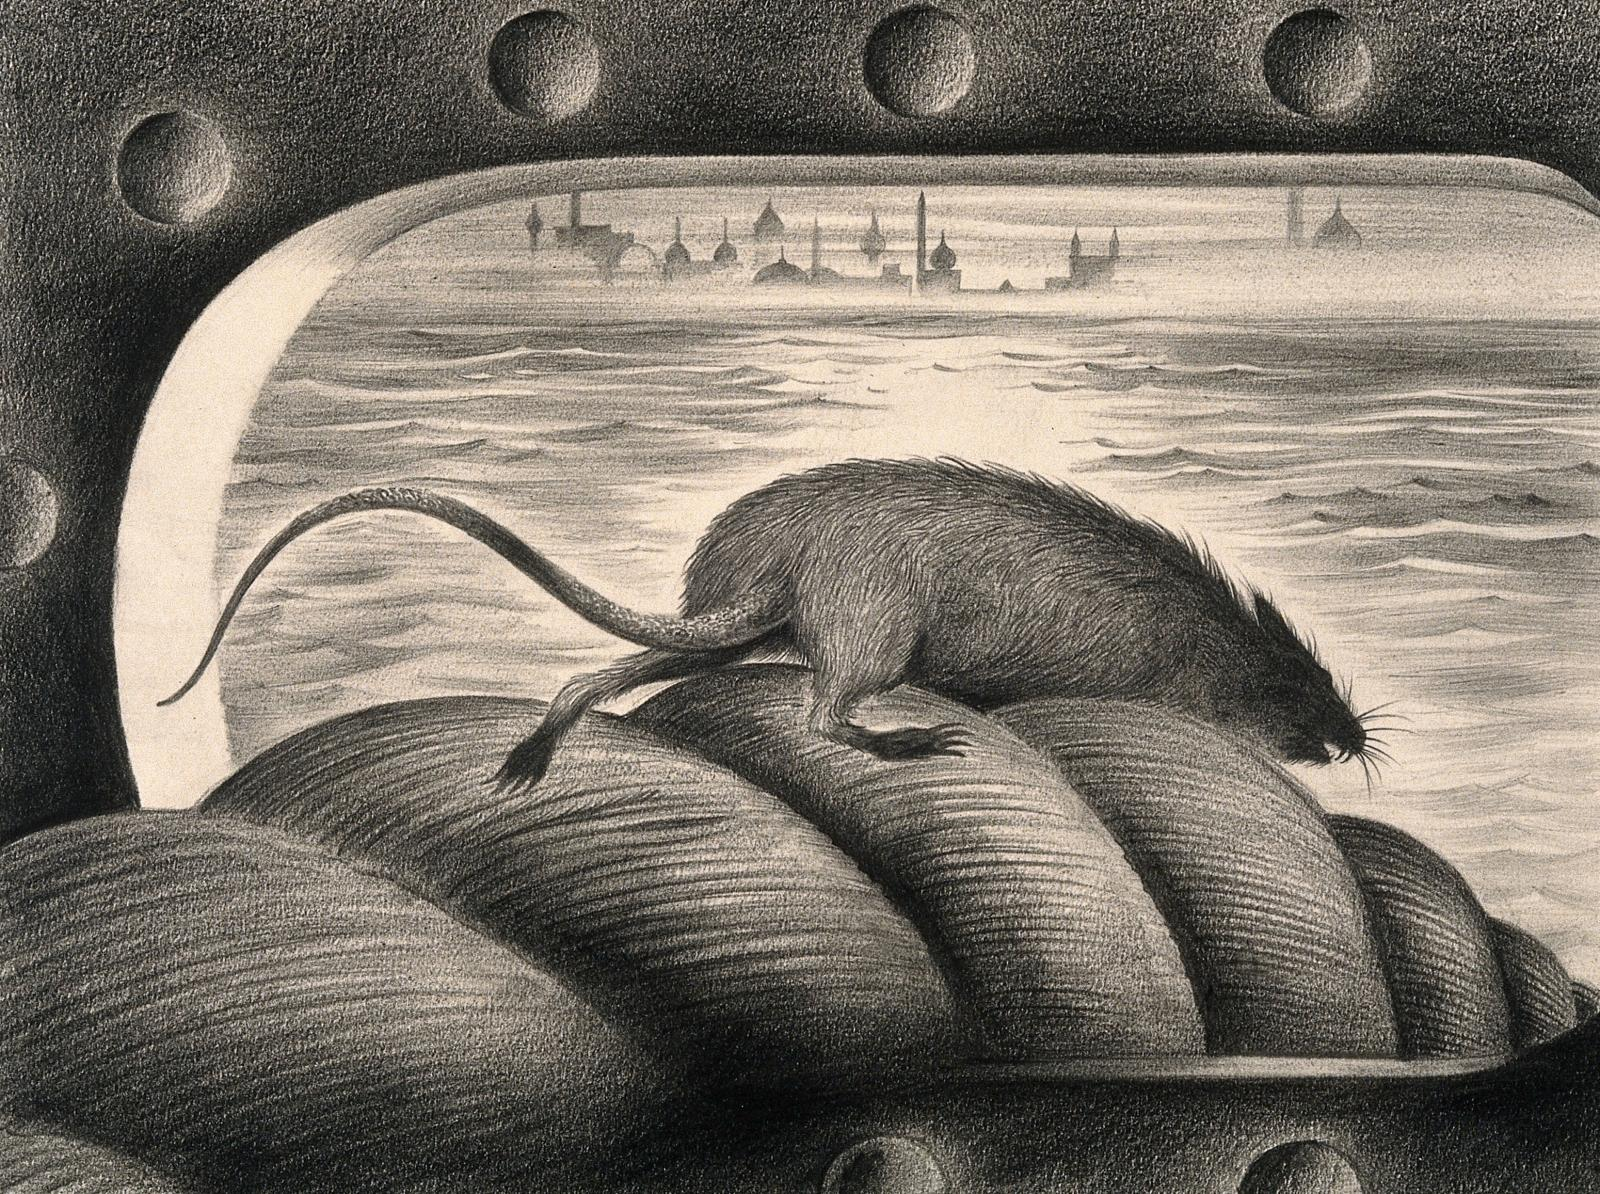 Dis-Ease still: Rat leaving the mooring rope of a ship (Albert Lloyd Tarter illustration, produced for an unfinished Hollywood educational film in the 1940s, Wellcome Collection).